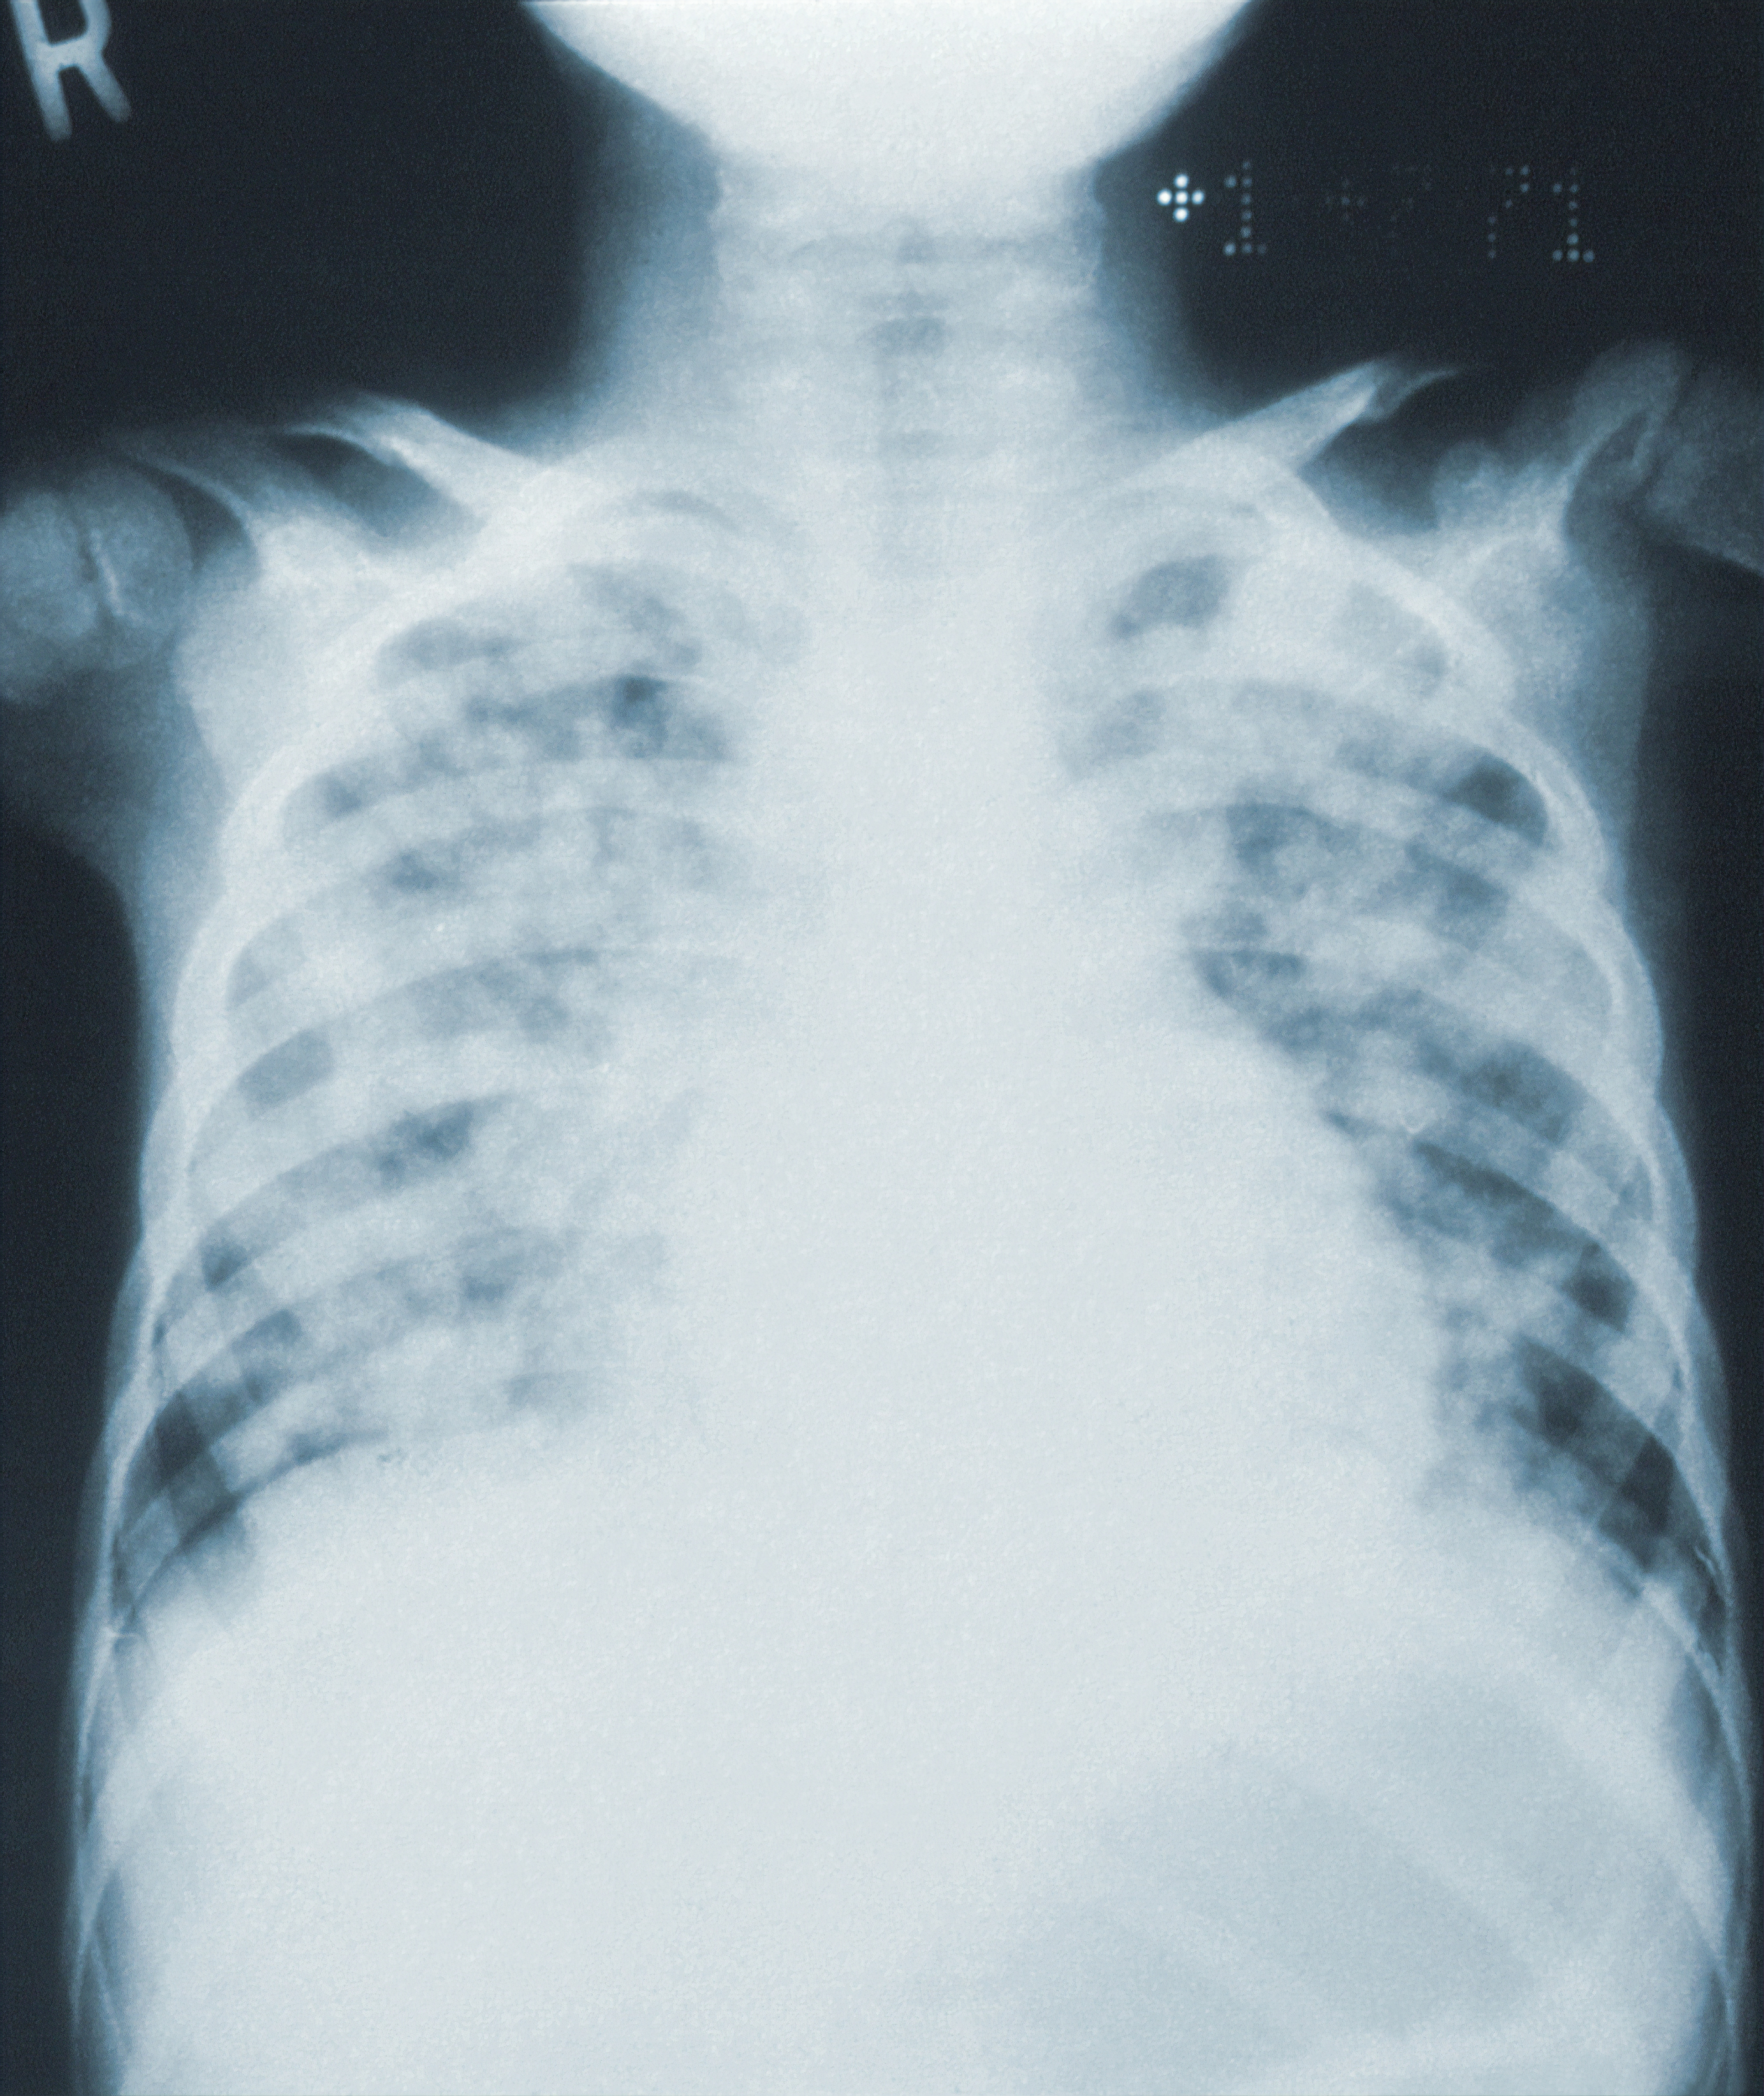 AI Reads Chest X-Rays